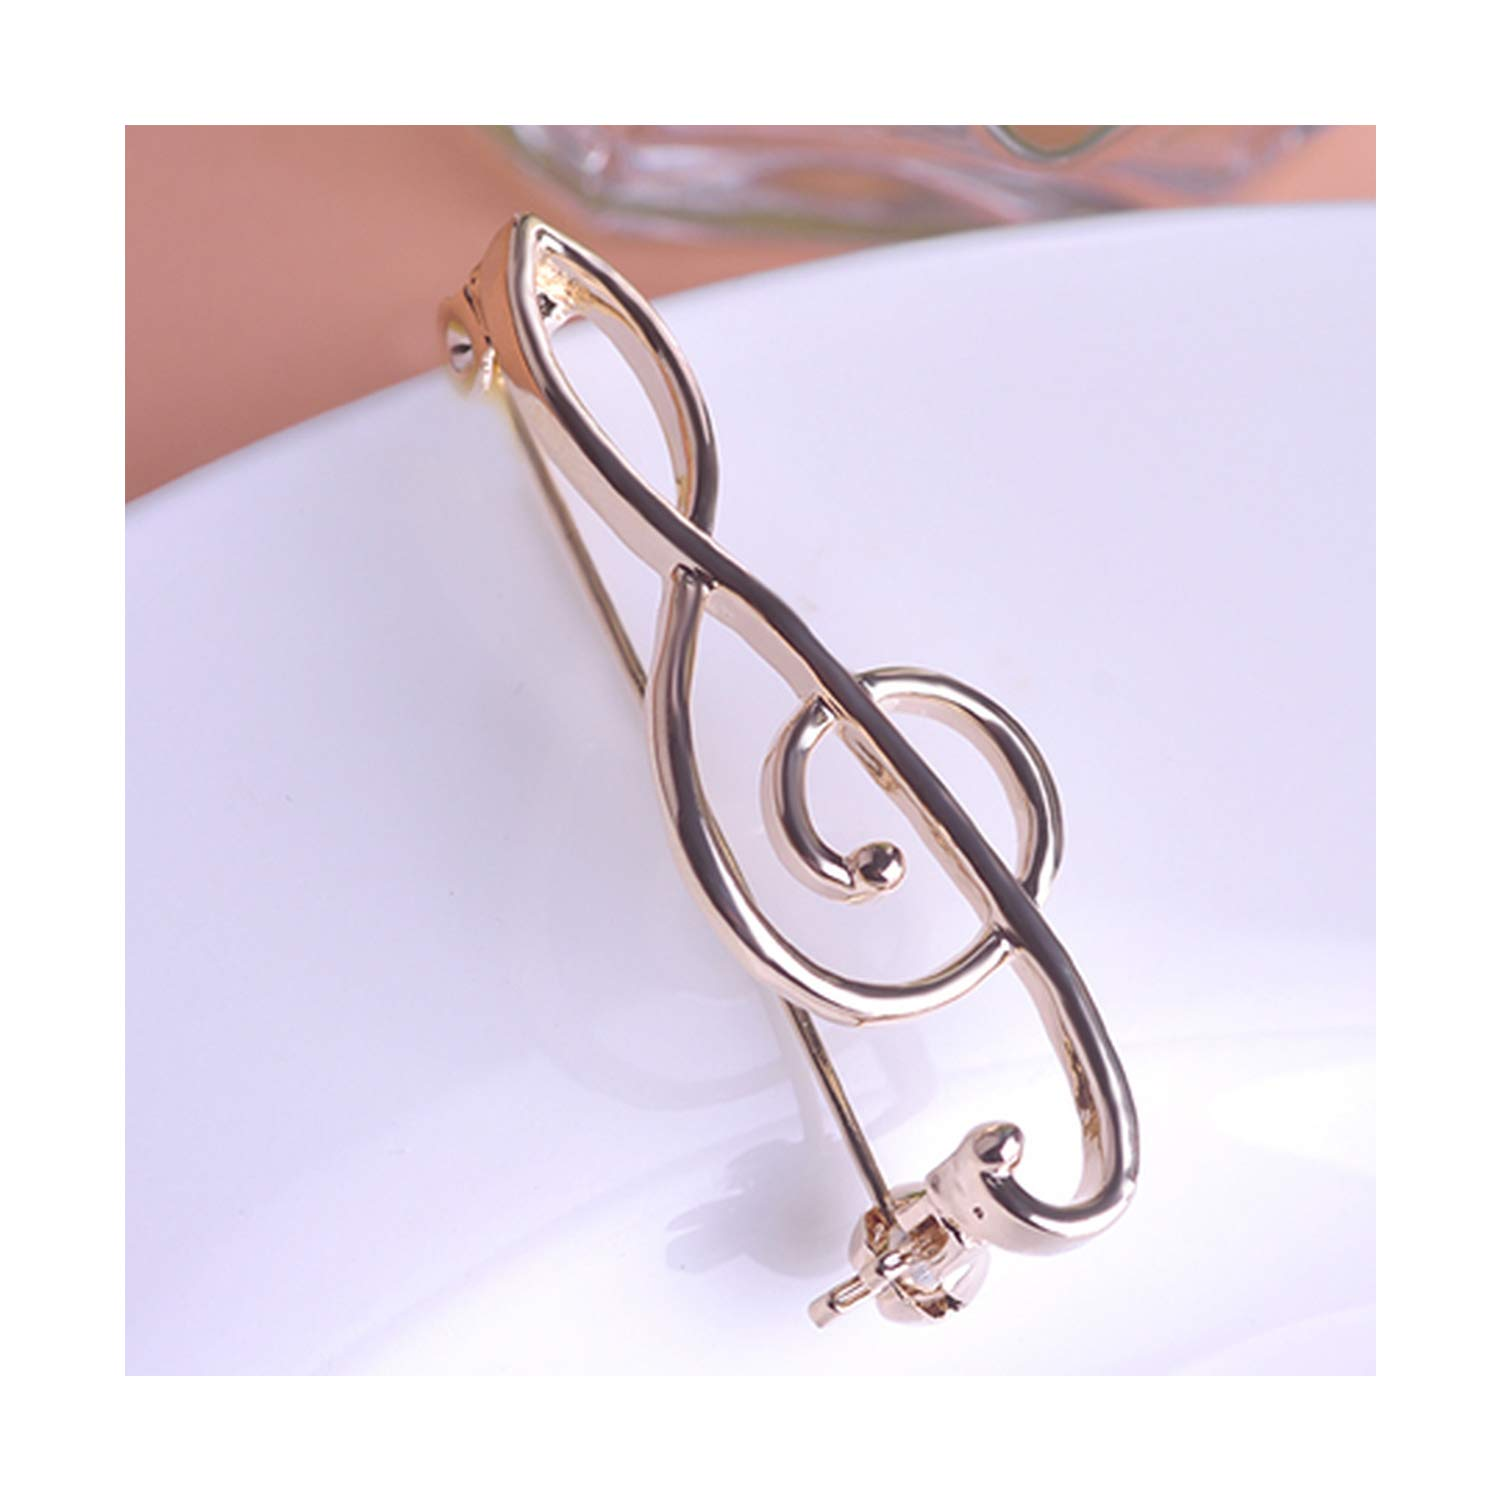 Simple Music Note Brooches For Women Men Jewelry Gold color Brooch Dress Accessories